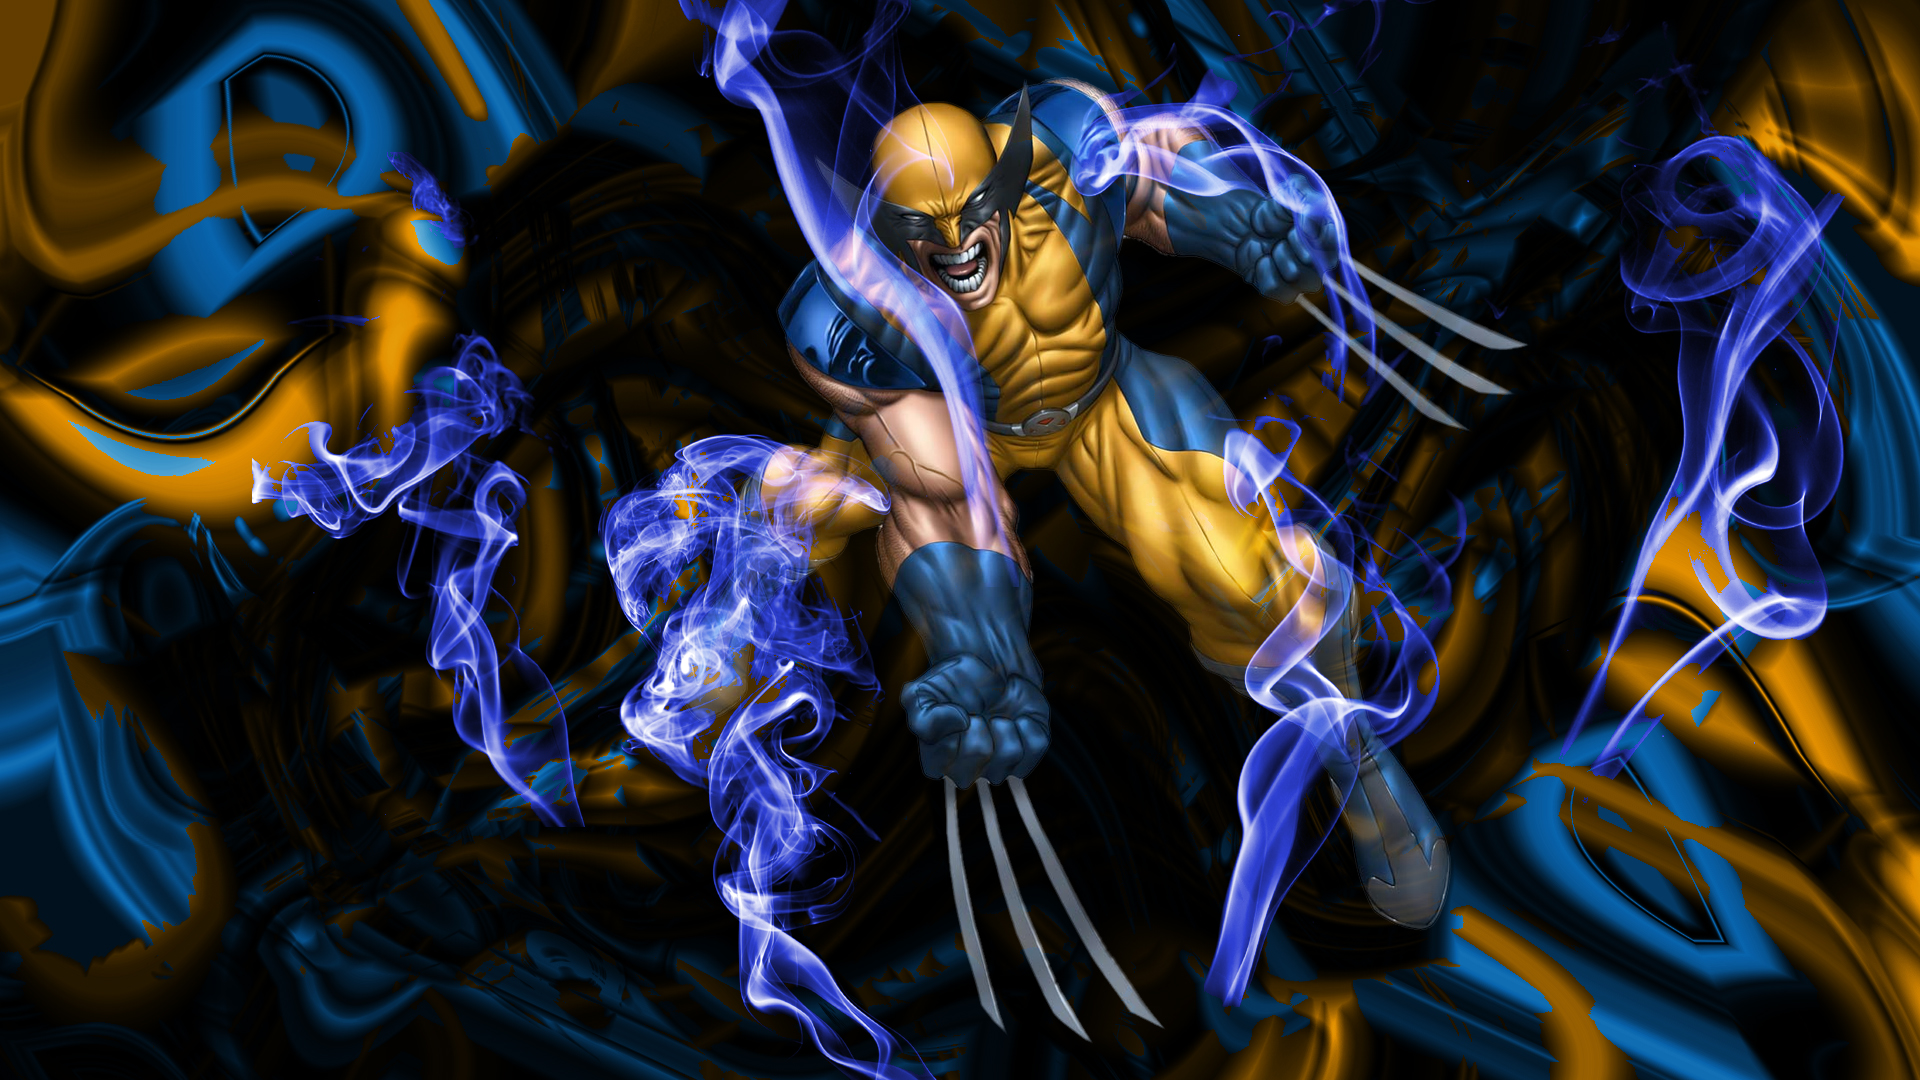 wolverine wallpapers hd free download